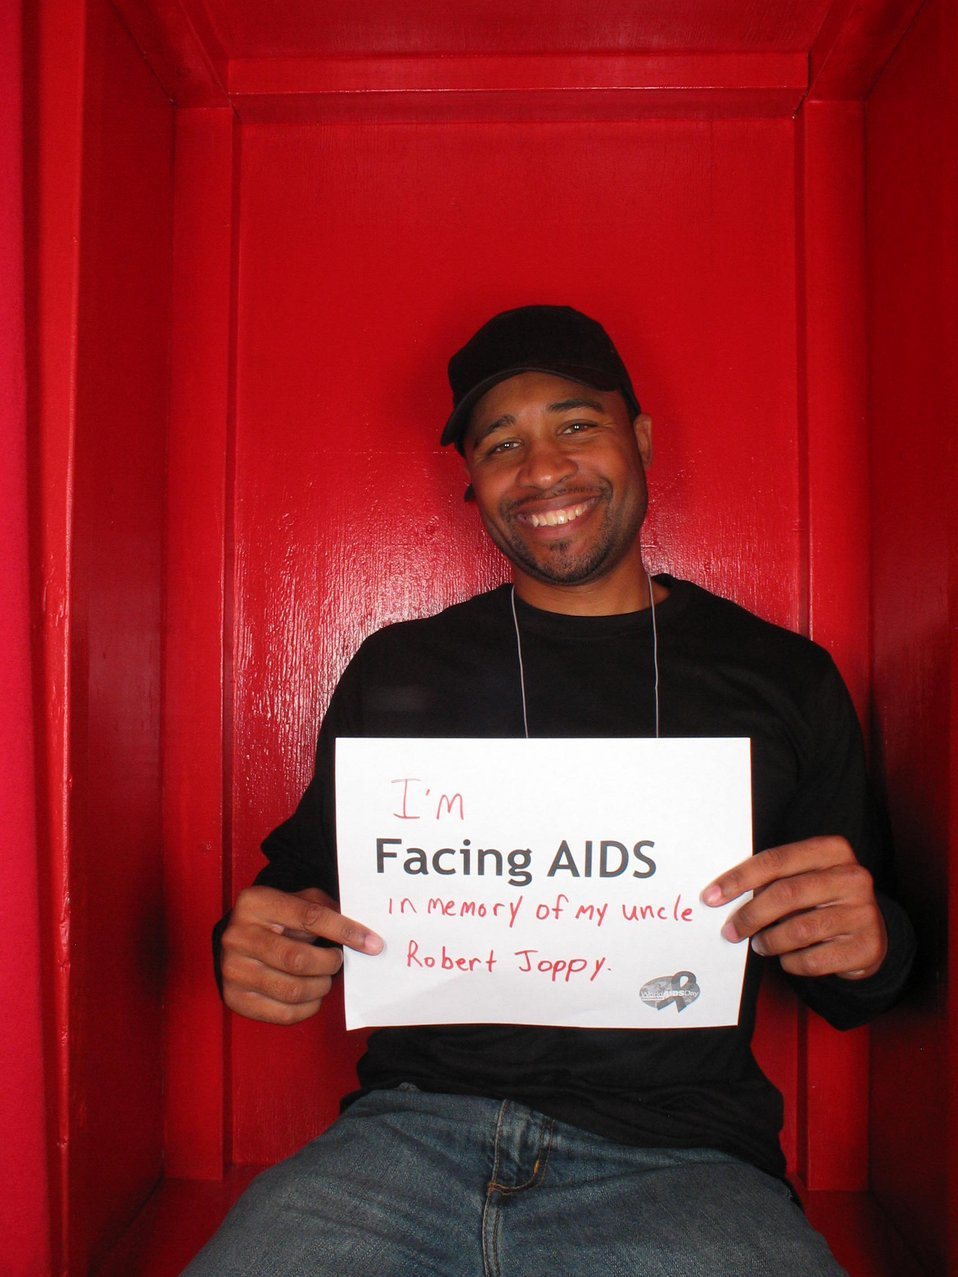 I'm Facing AIDS in memory of my uncle.